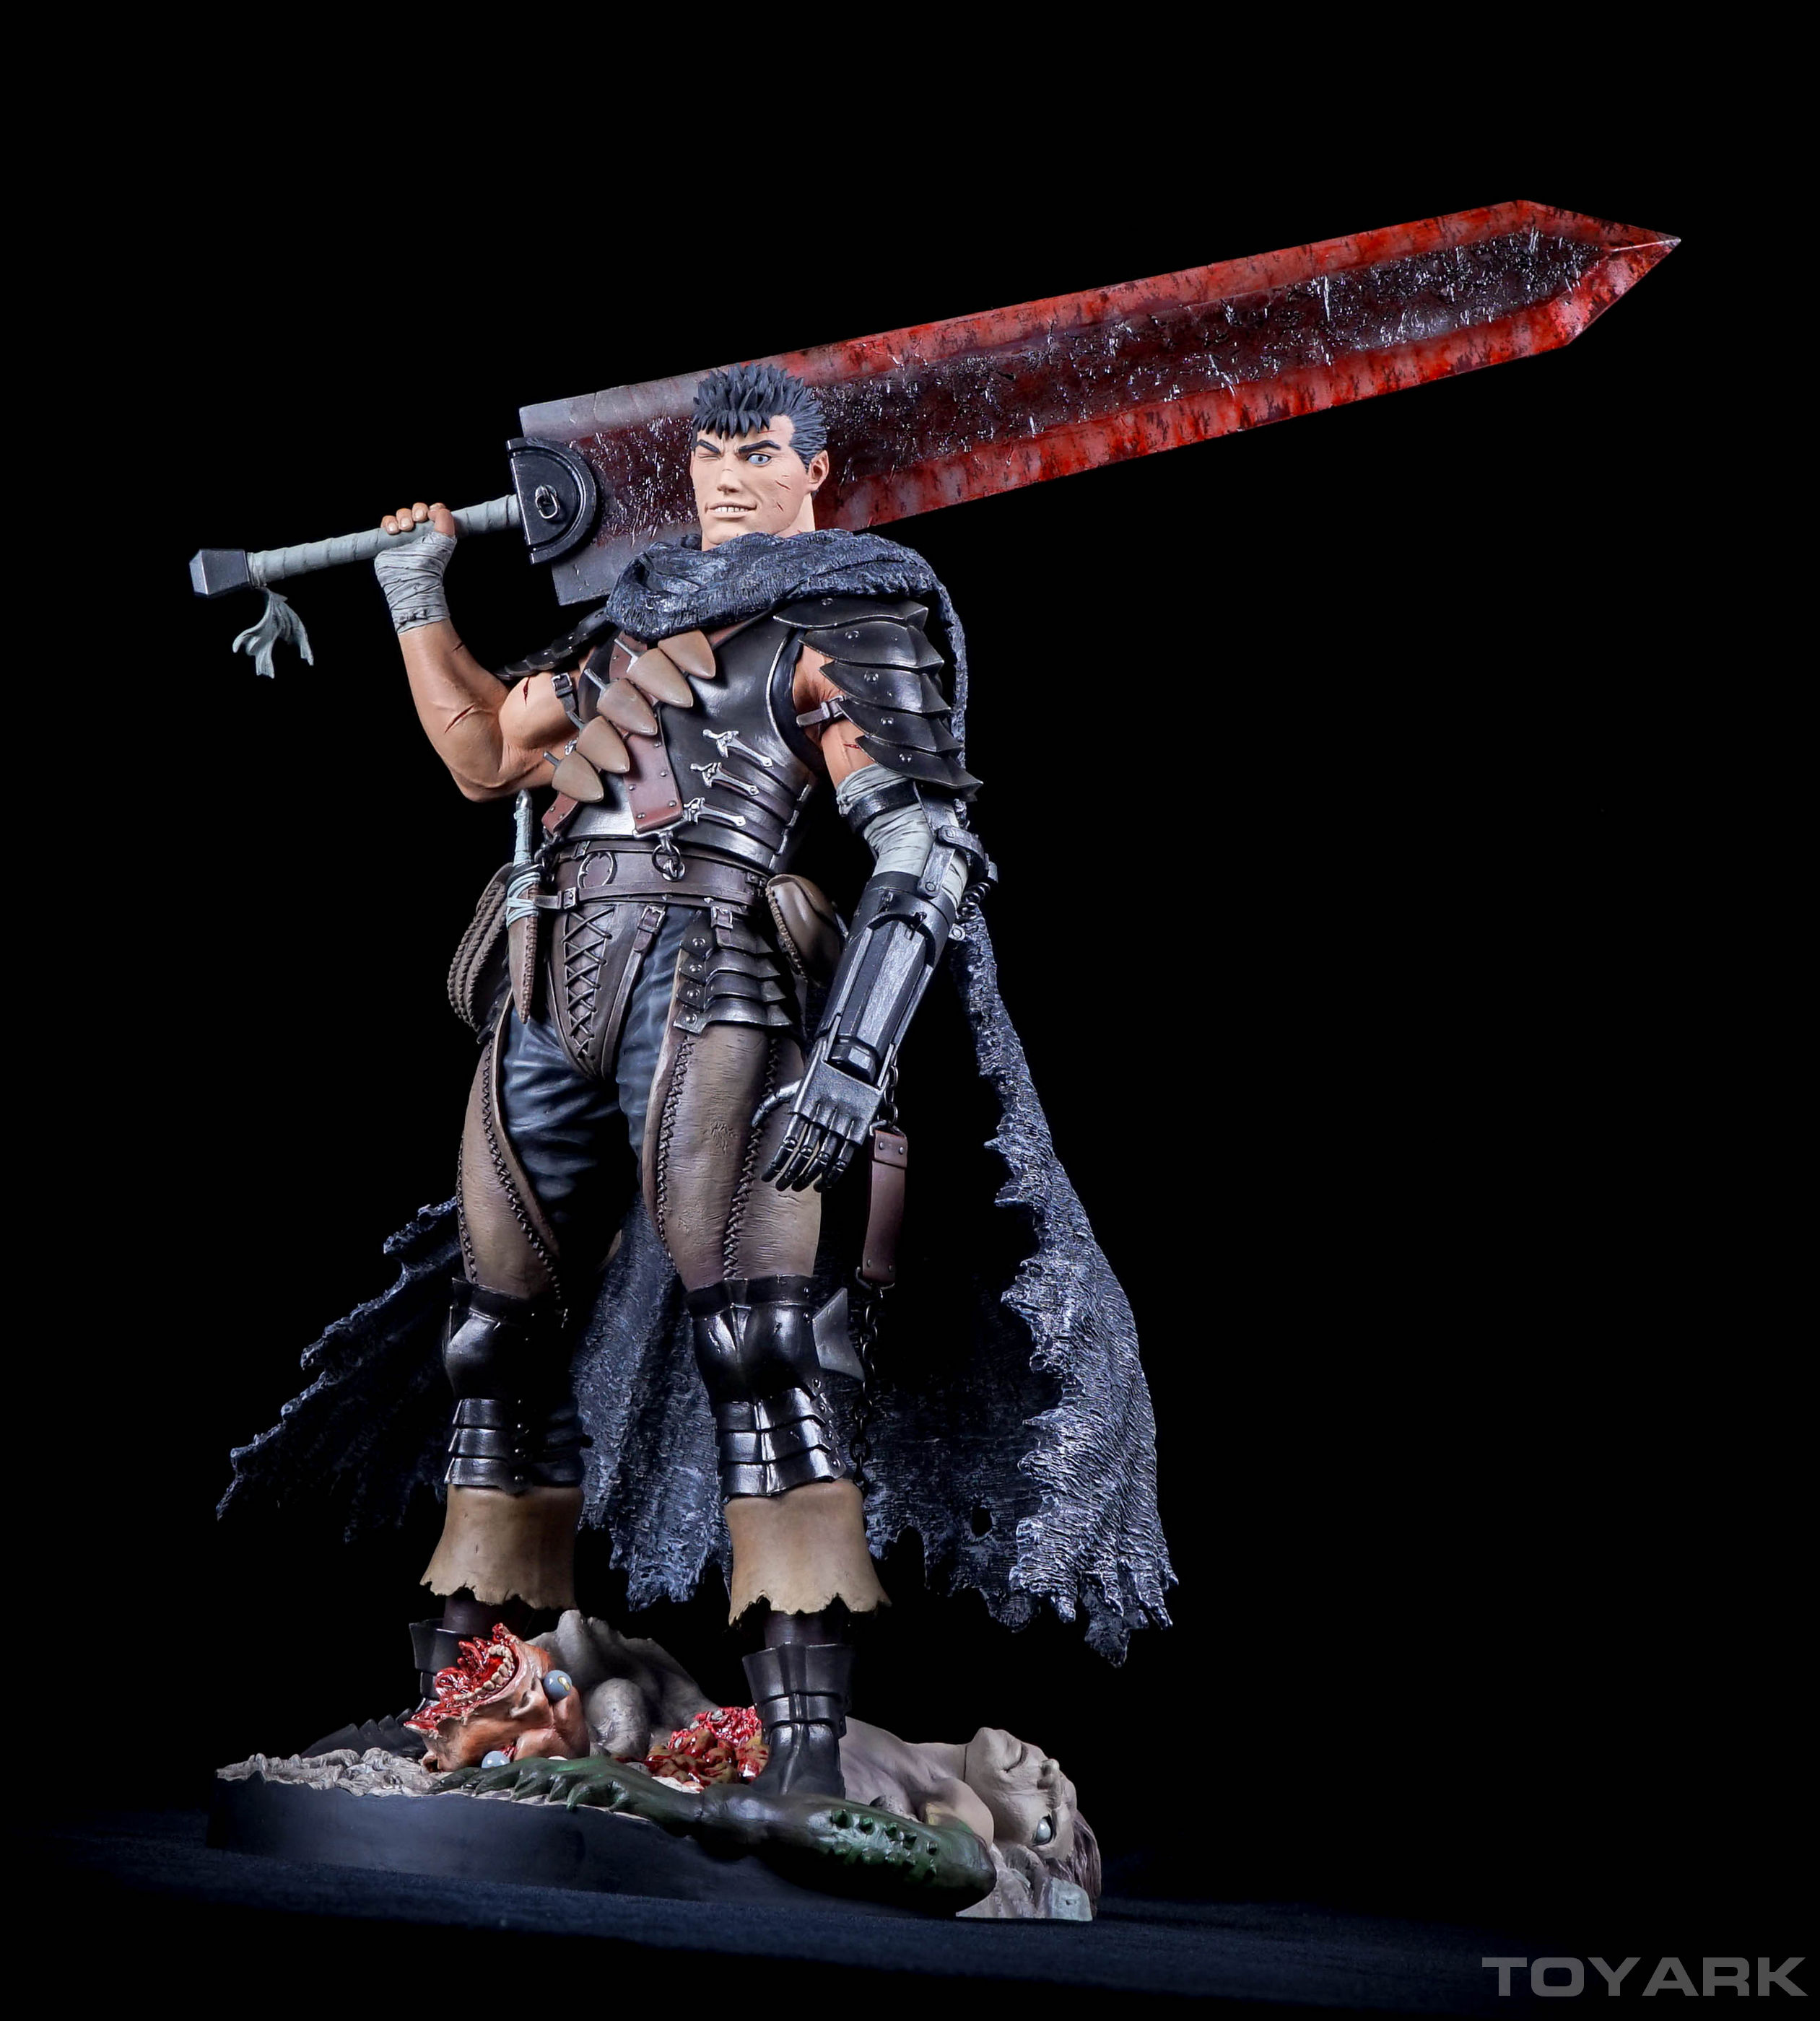 http://news.toyark.com/wp-content/uploads/sites/4/2015/11/Berserk-Guts-Statue-049.jpg